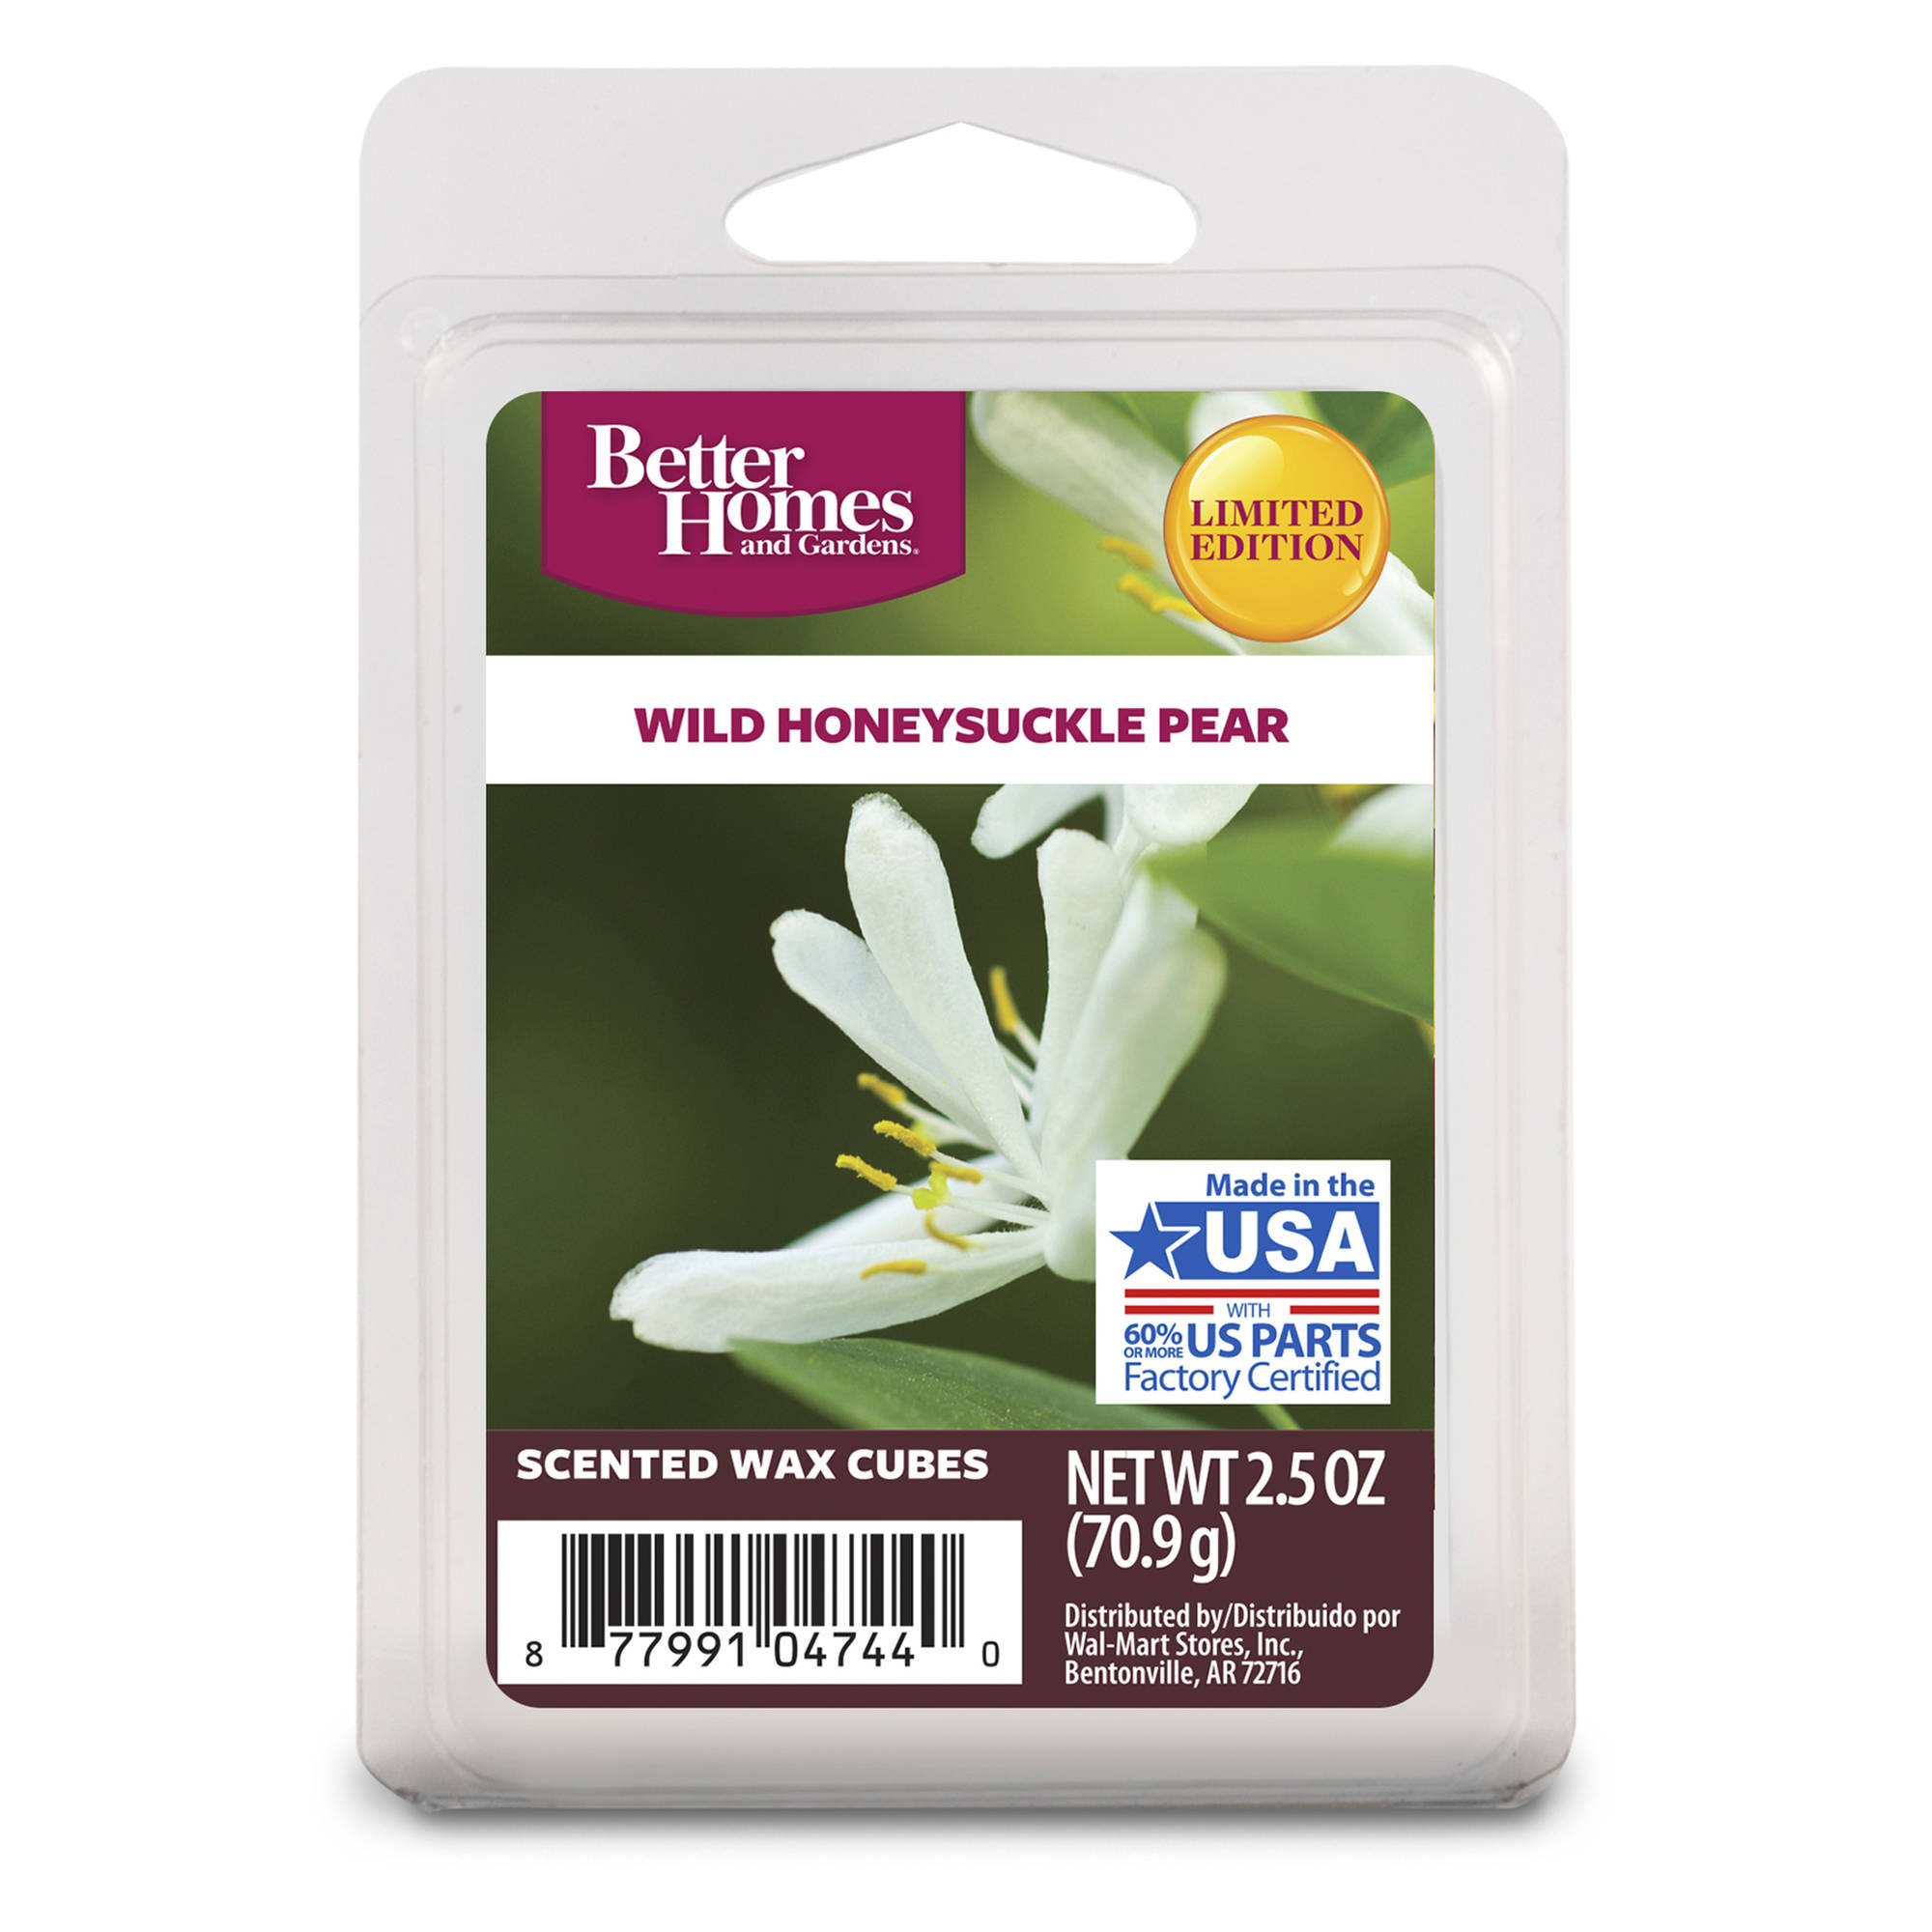 Better Homes and Gardens Wax Cubes, Wild Honeysuckle Pear